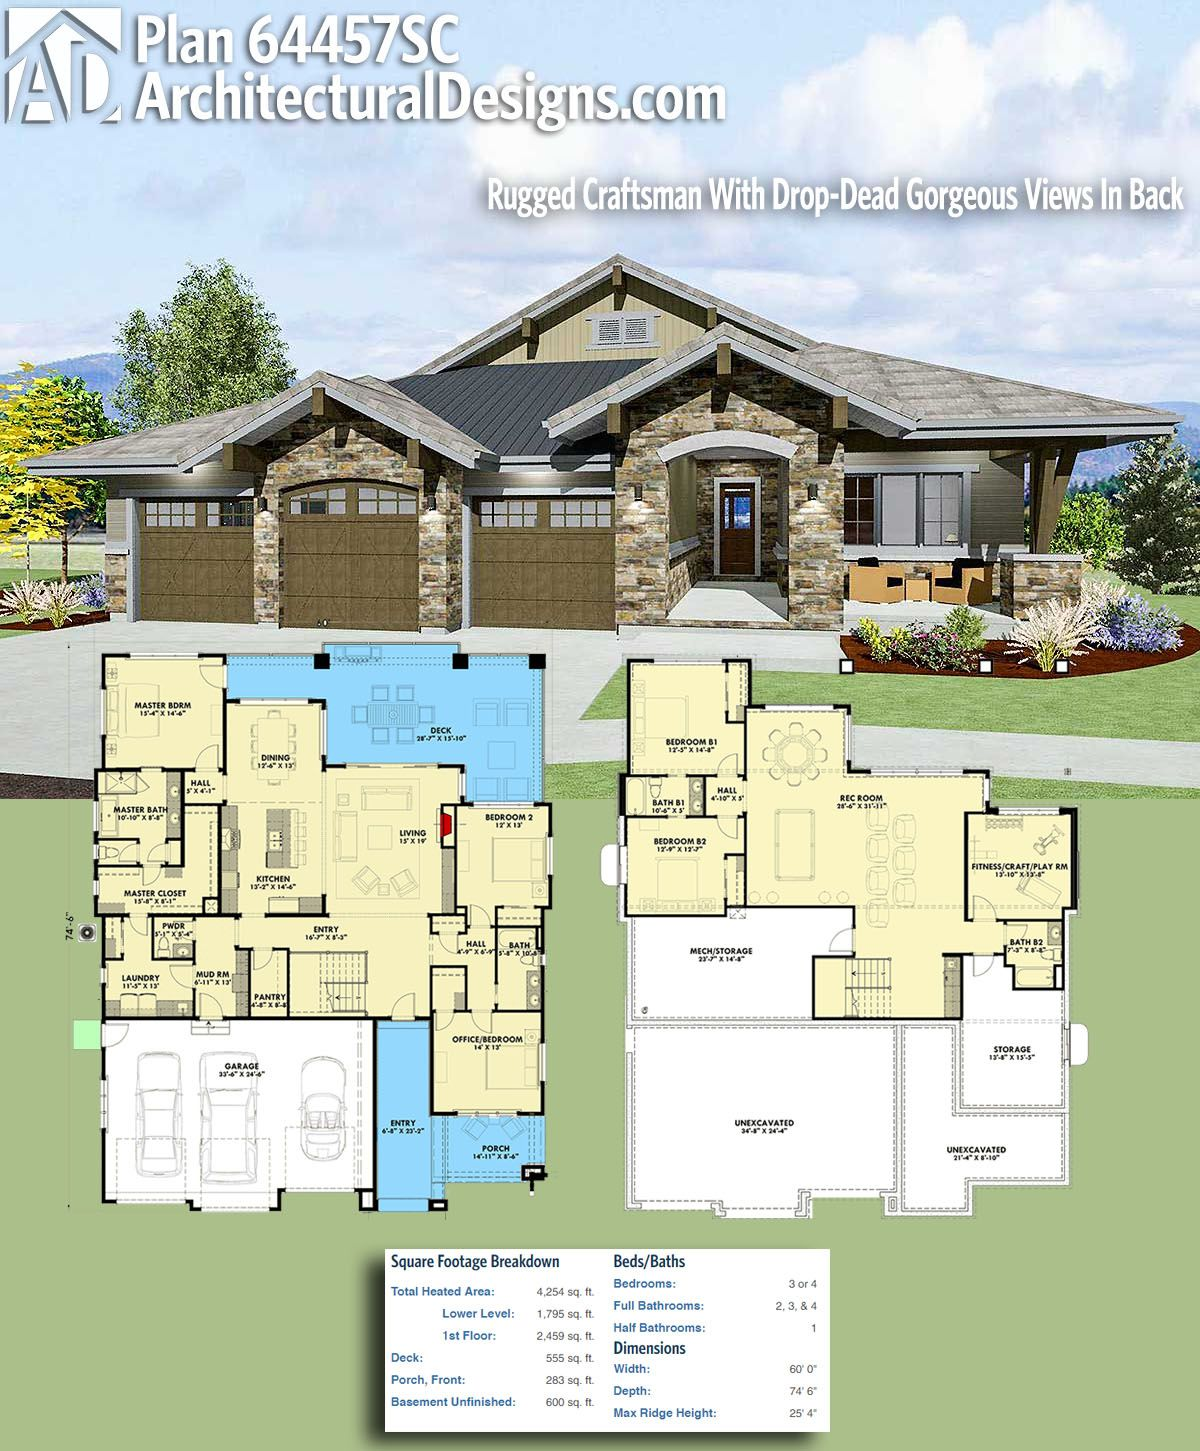 Plan 64457sc Rugged Craftsman With Drop Dead Gorgeous Views In Back Craftsman House Plans Craftsman House House Plans